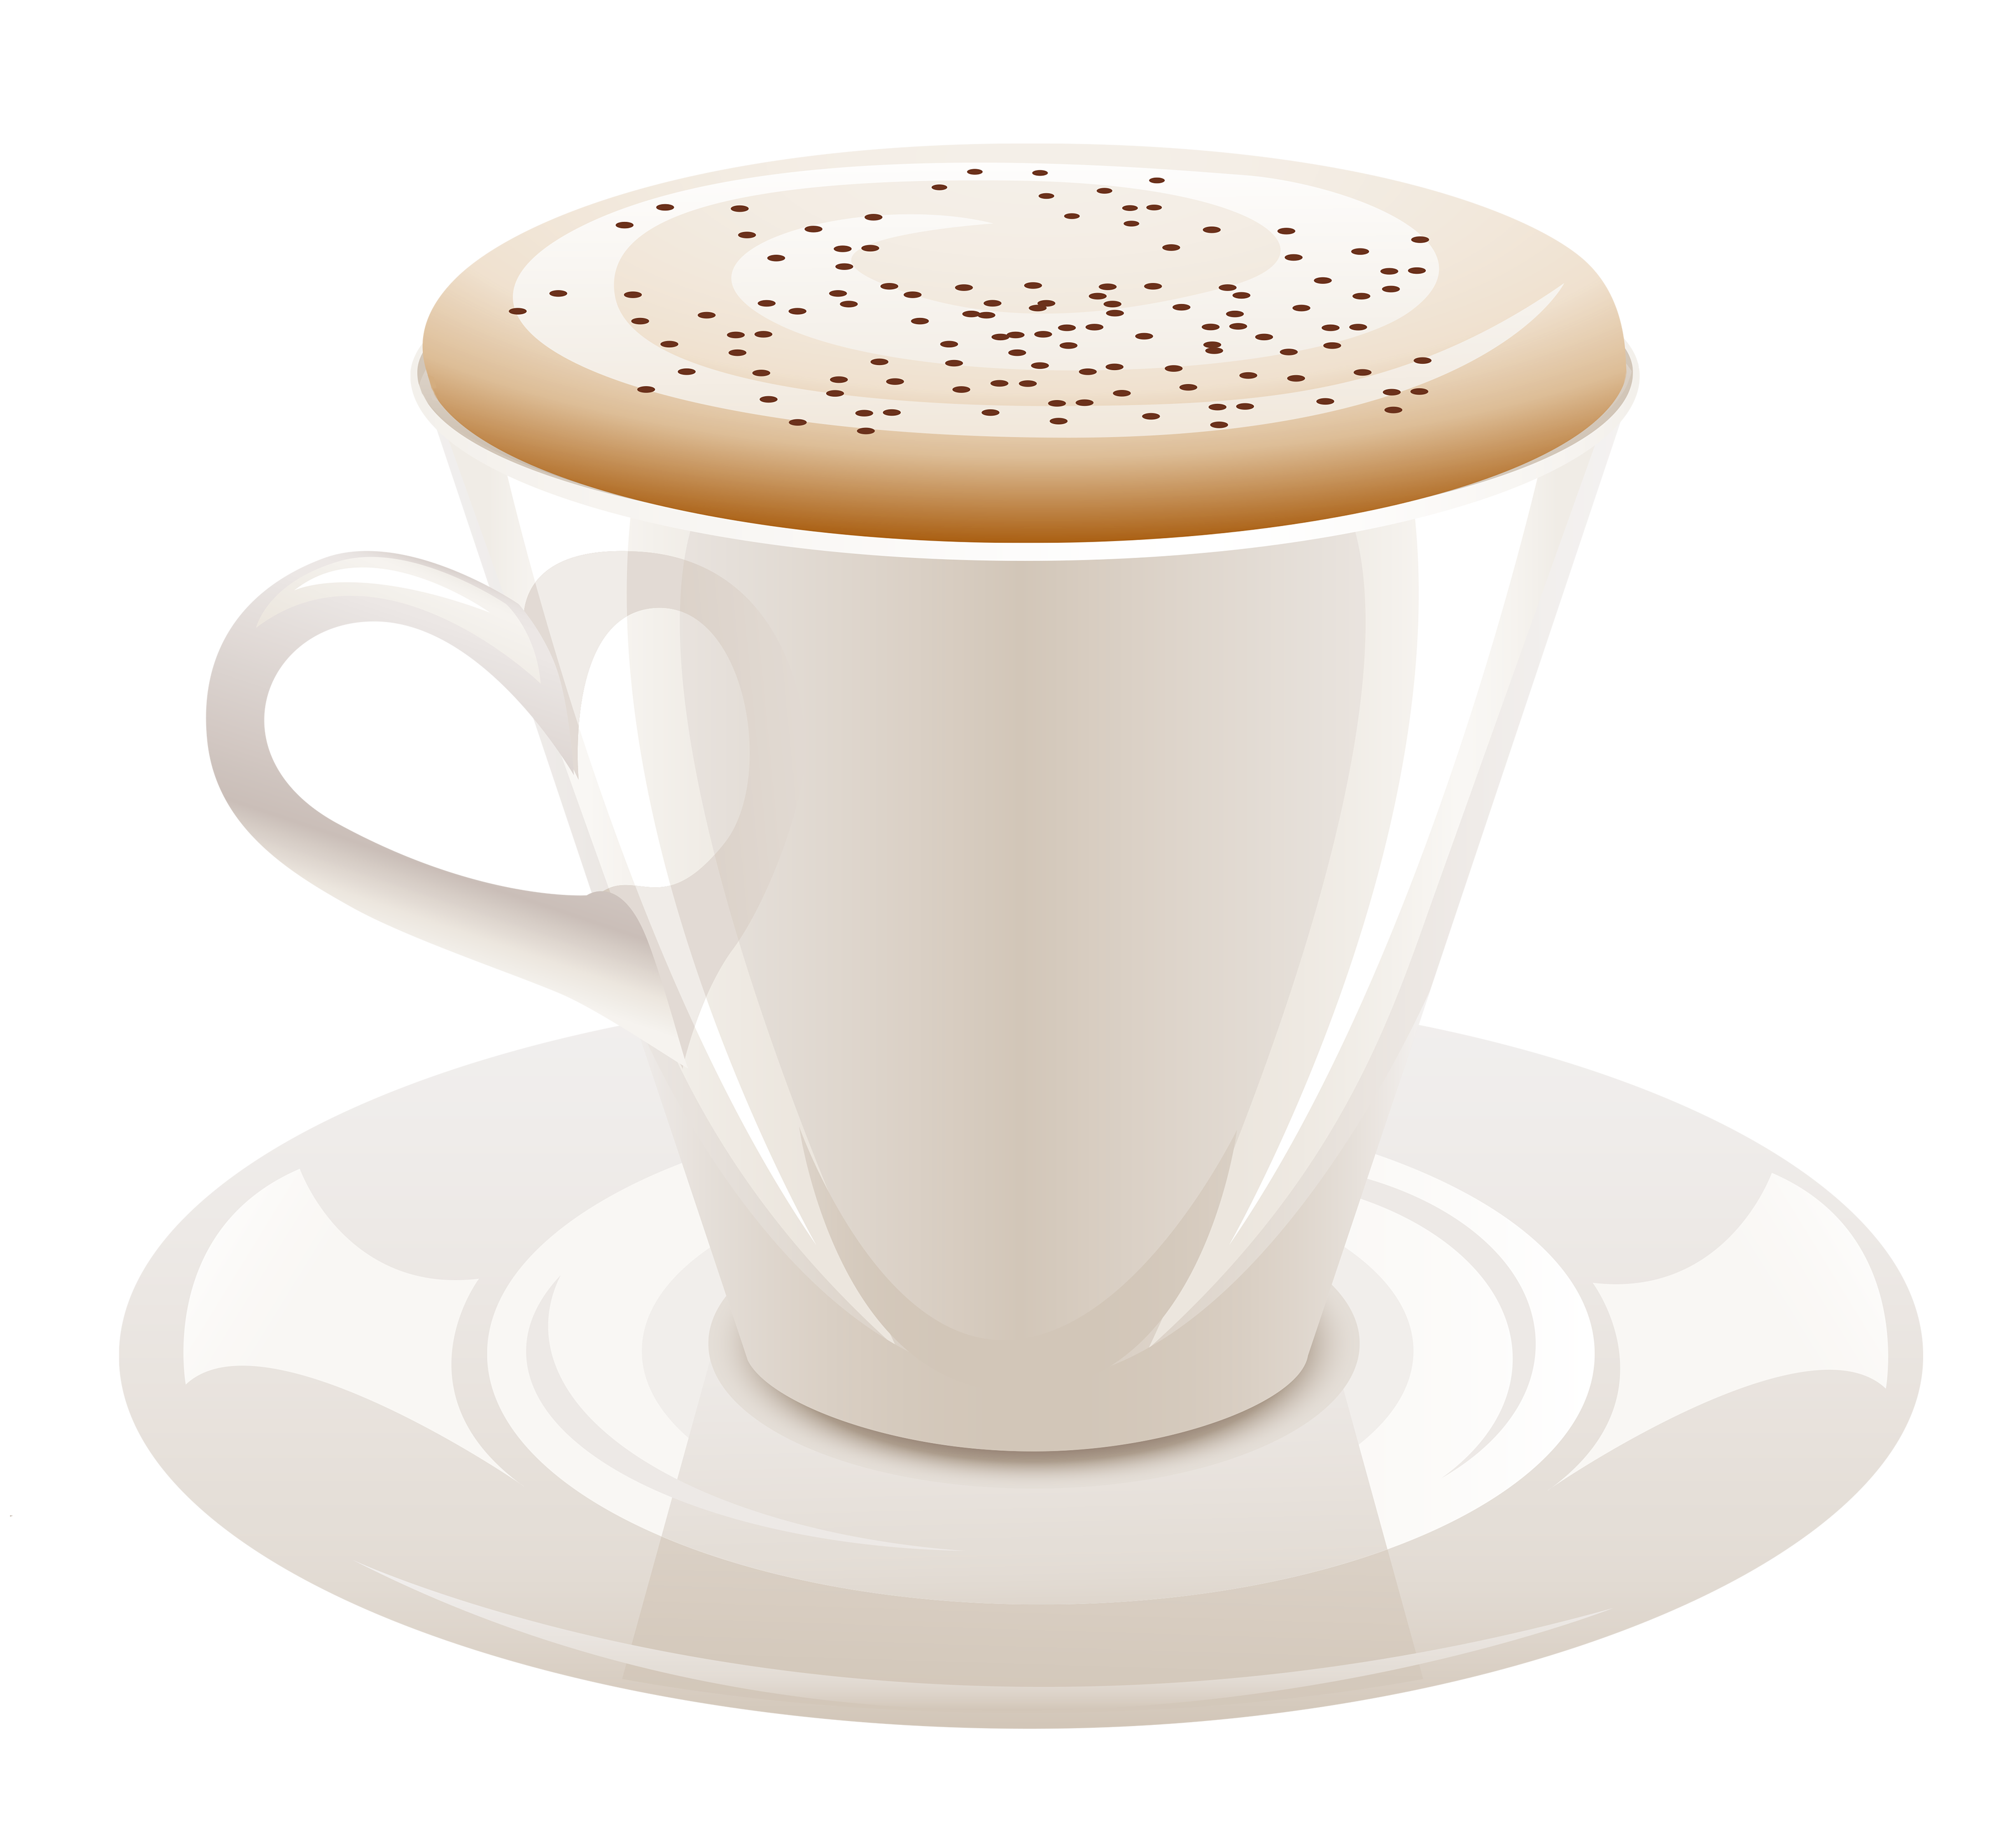 clip art freeuse Png picture gallery yopriceville. Transparent cup coffee.